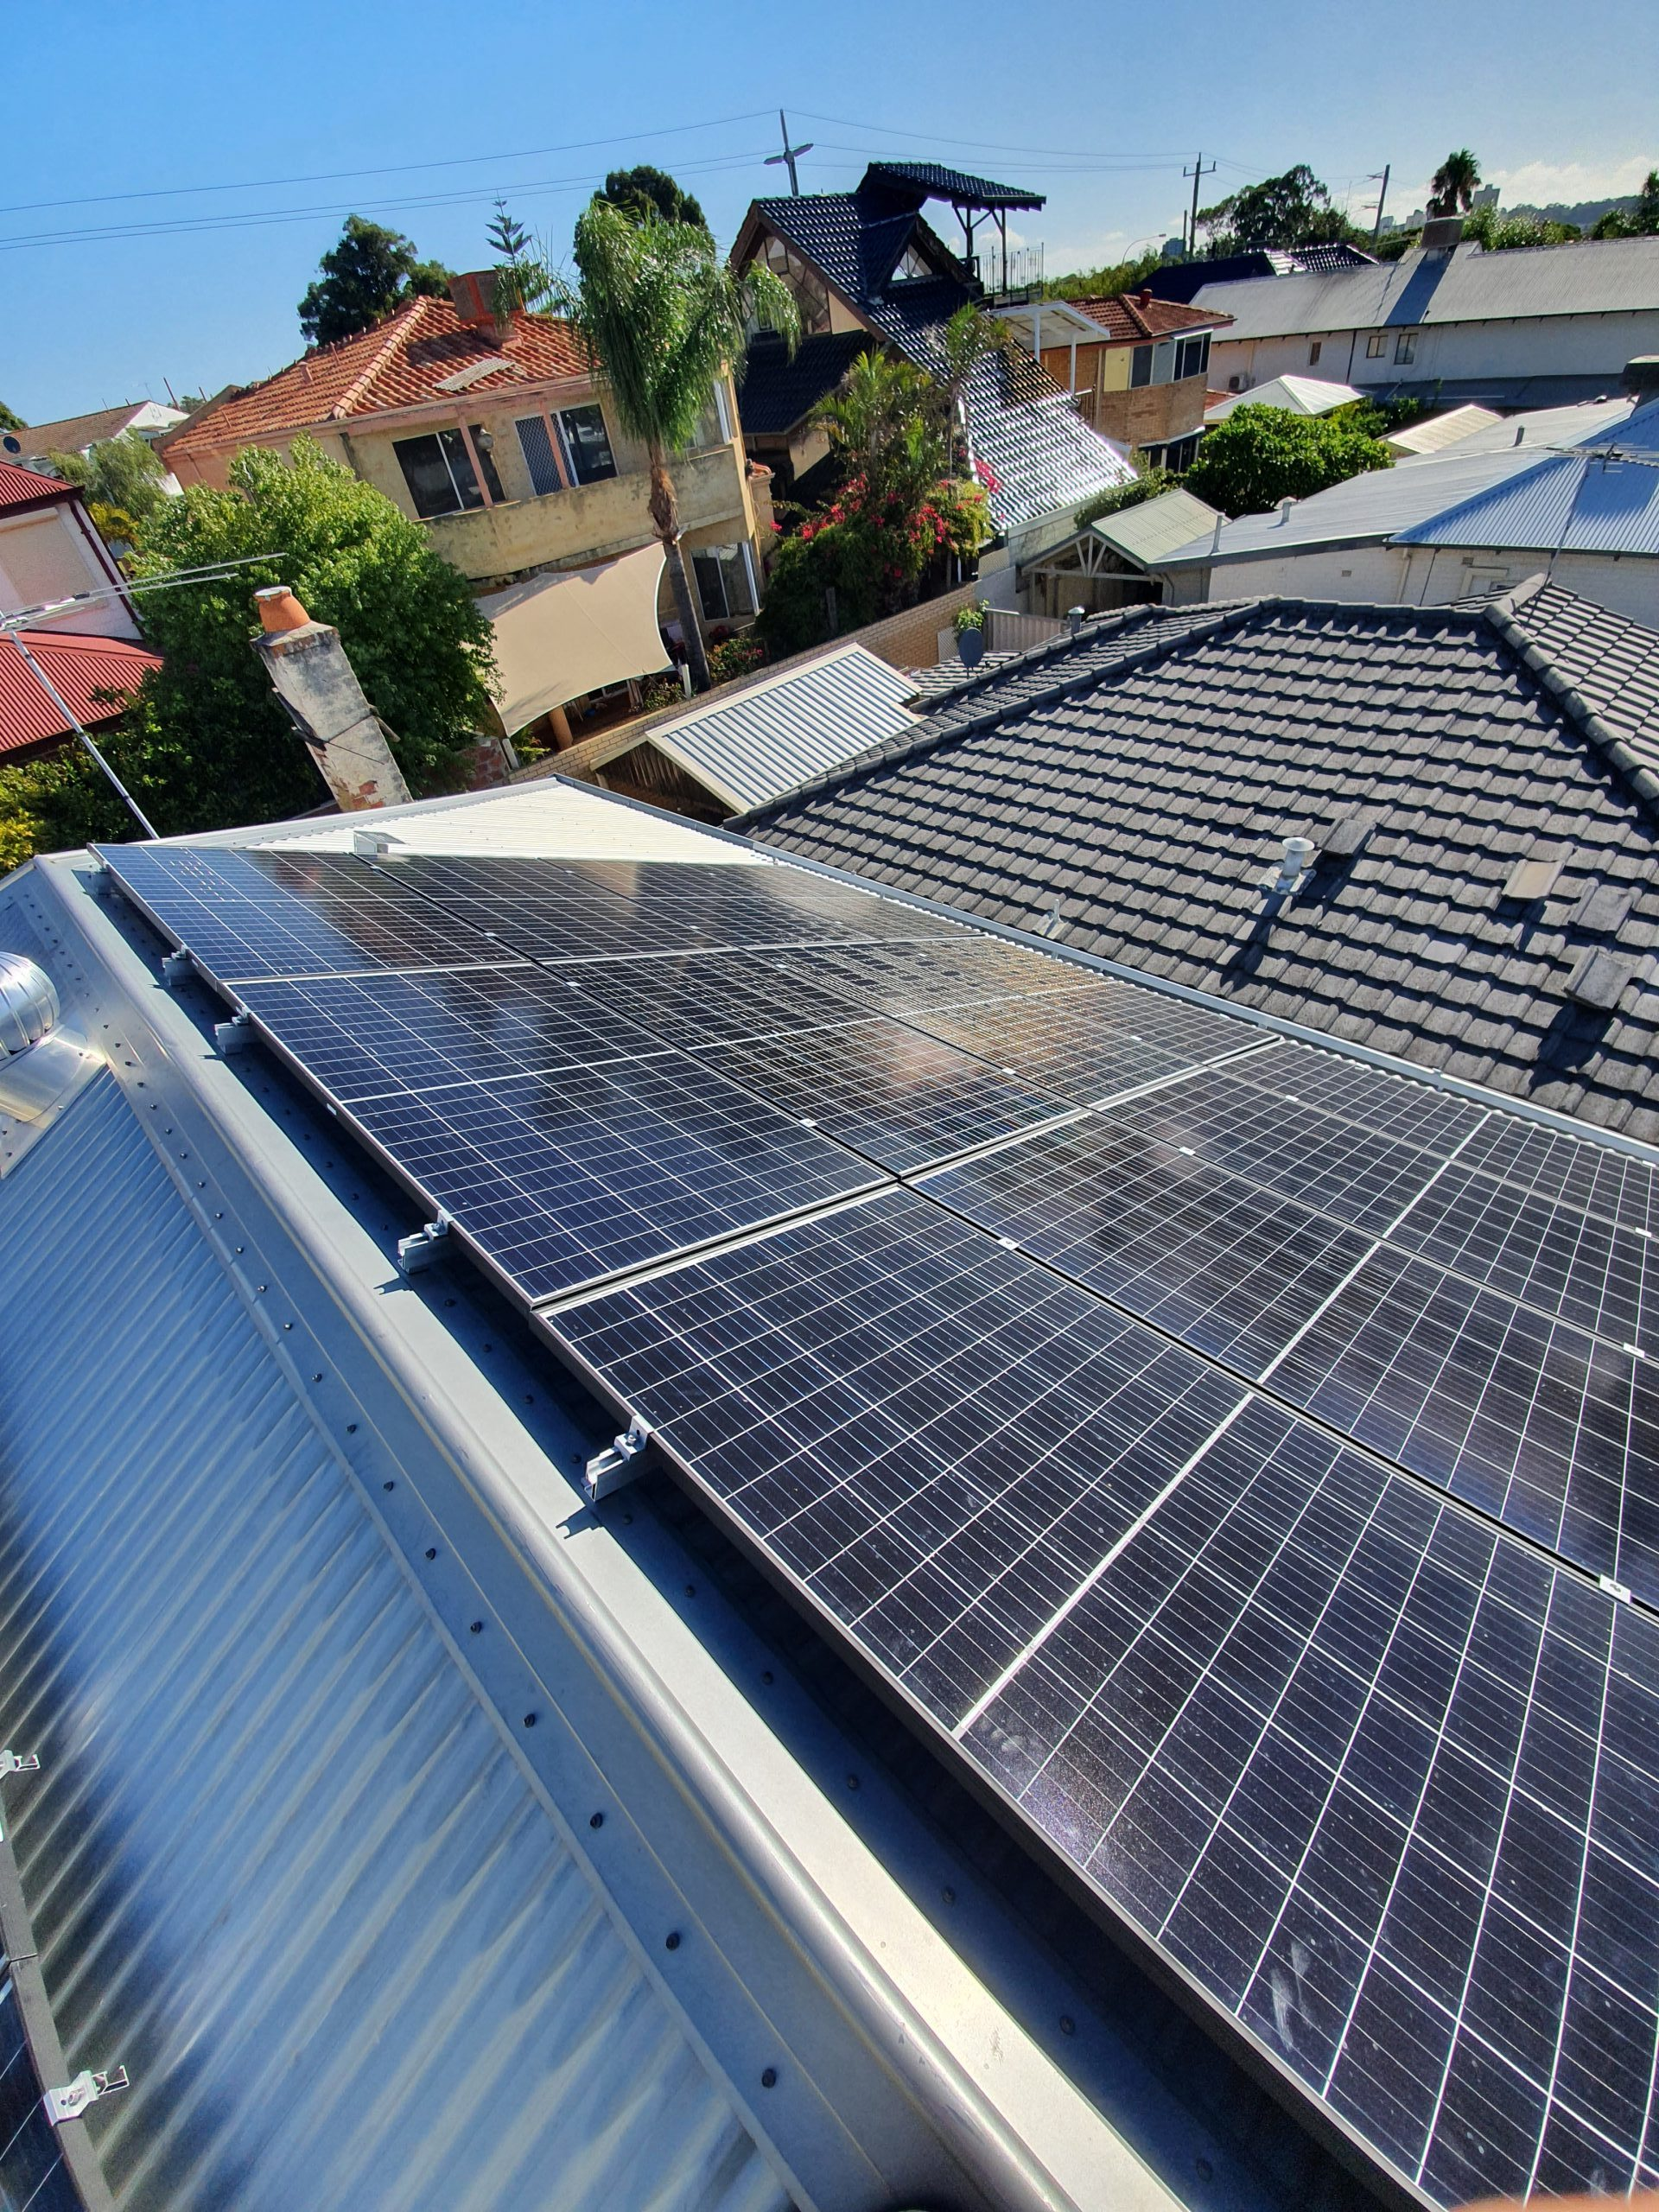 South Perth 6.66kW Solar System Panels Installed